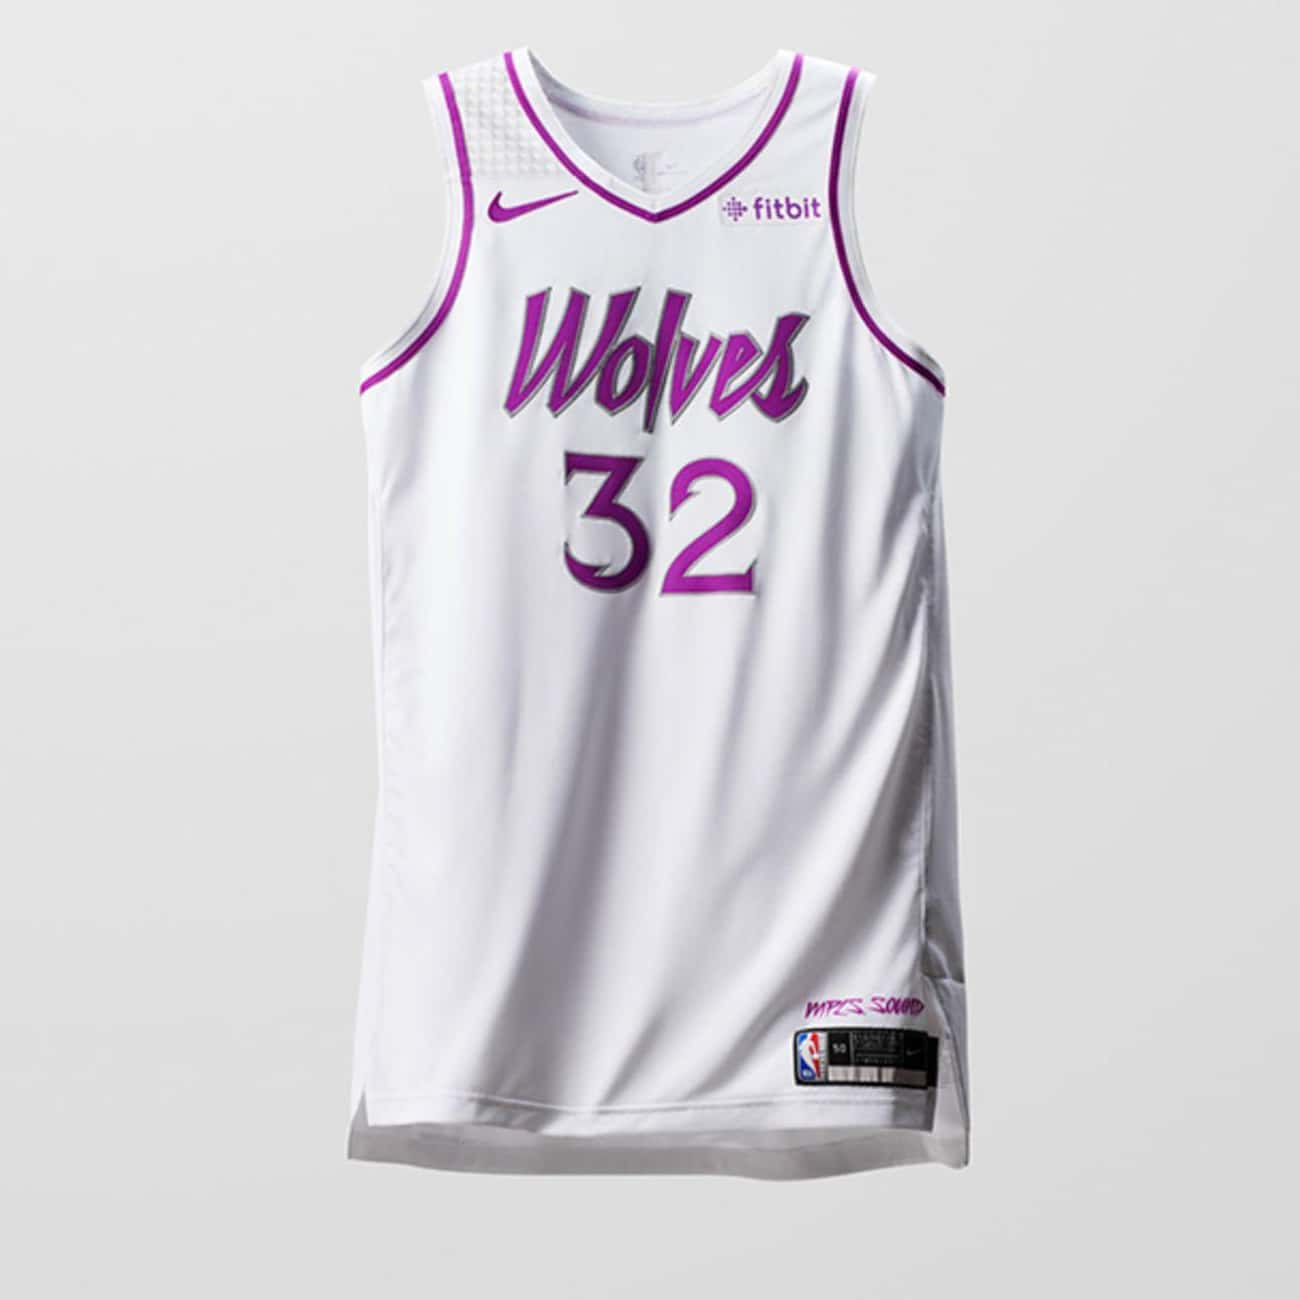 """Minnesota Timberwolves is listed (or ranked) 1 on the list The Coolest NBA """"Earned Edition"""" Jerseys"""